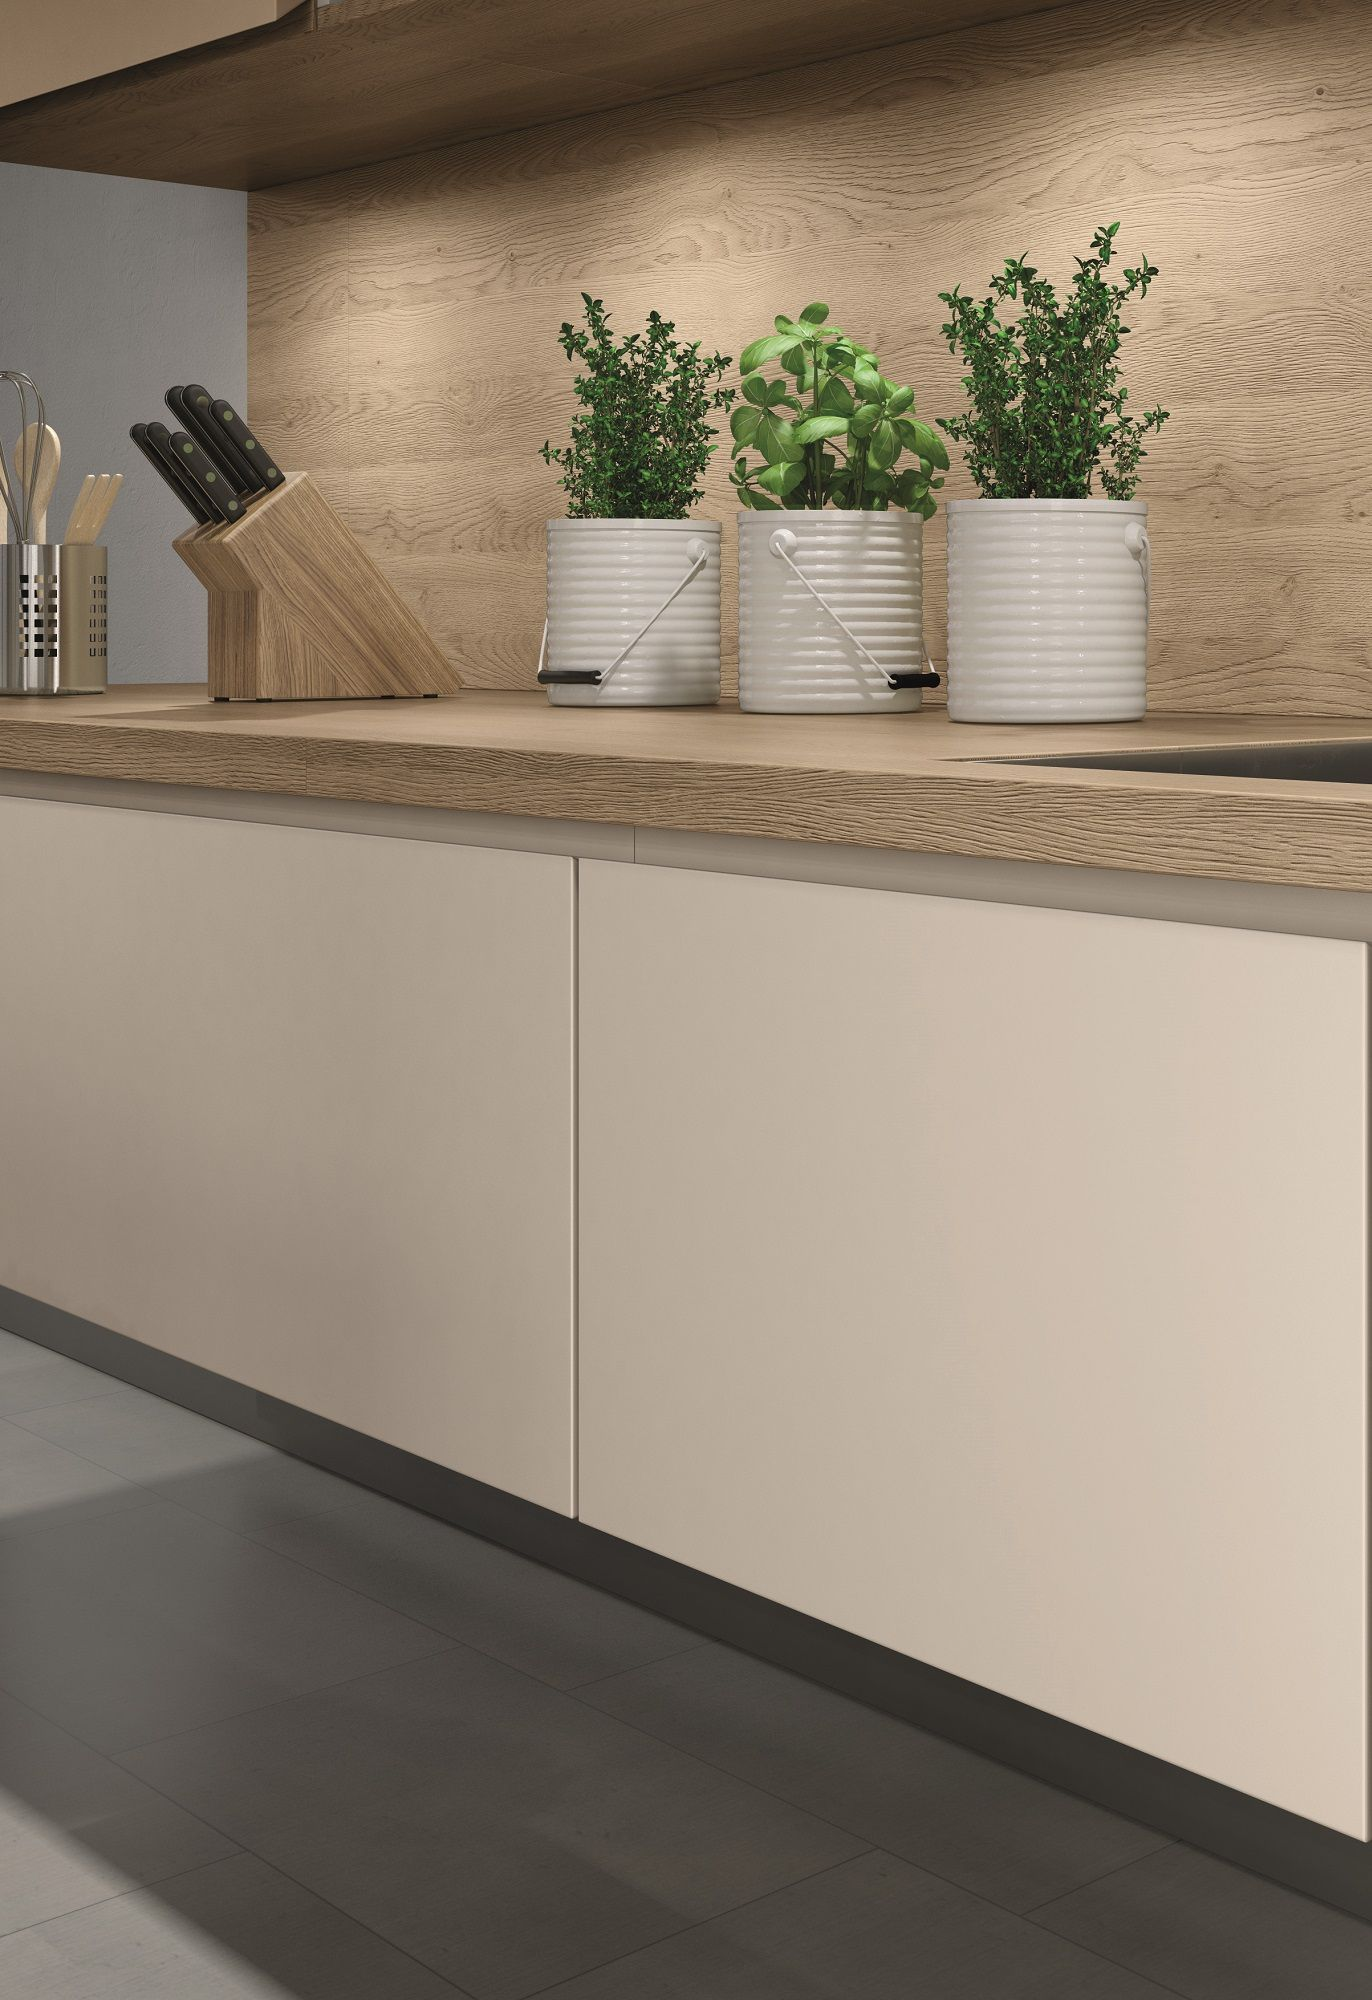 Egger Kitchen Worktop H3309 St28 Sand Gladstone Oak Is One Of Our New Generation Of Worktops Where T Modern Wooden Kitchen Kitchen Room Design Kitchen Worktop